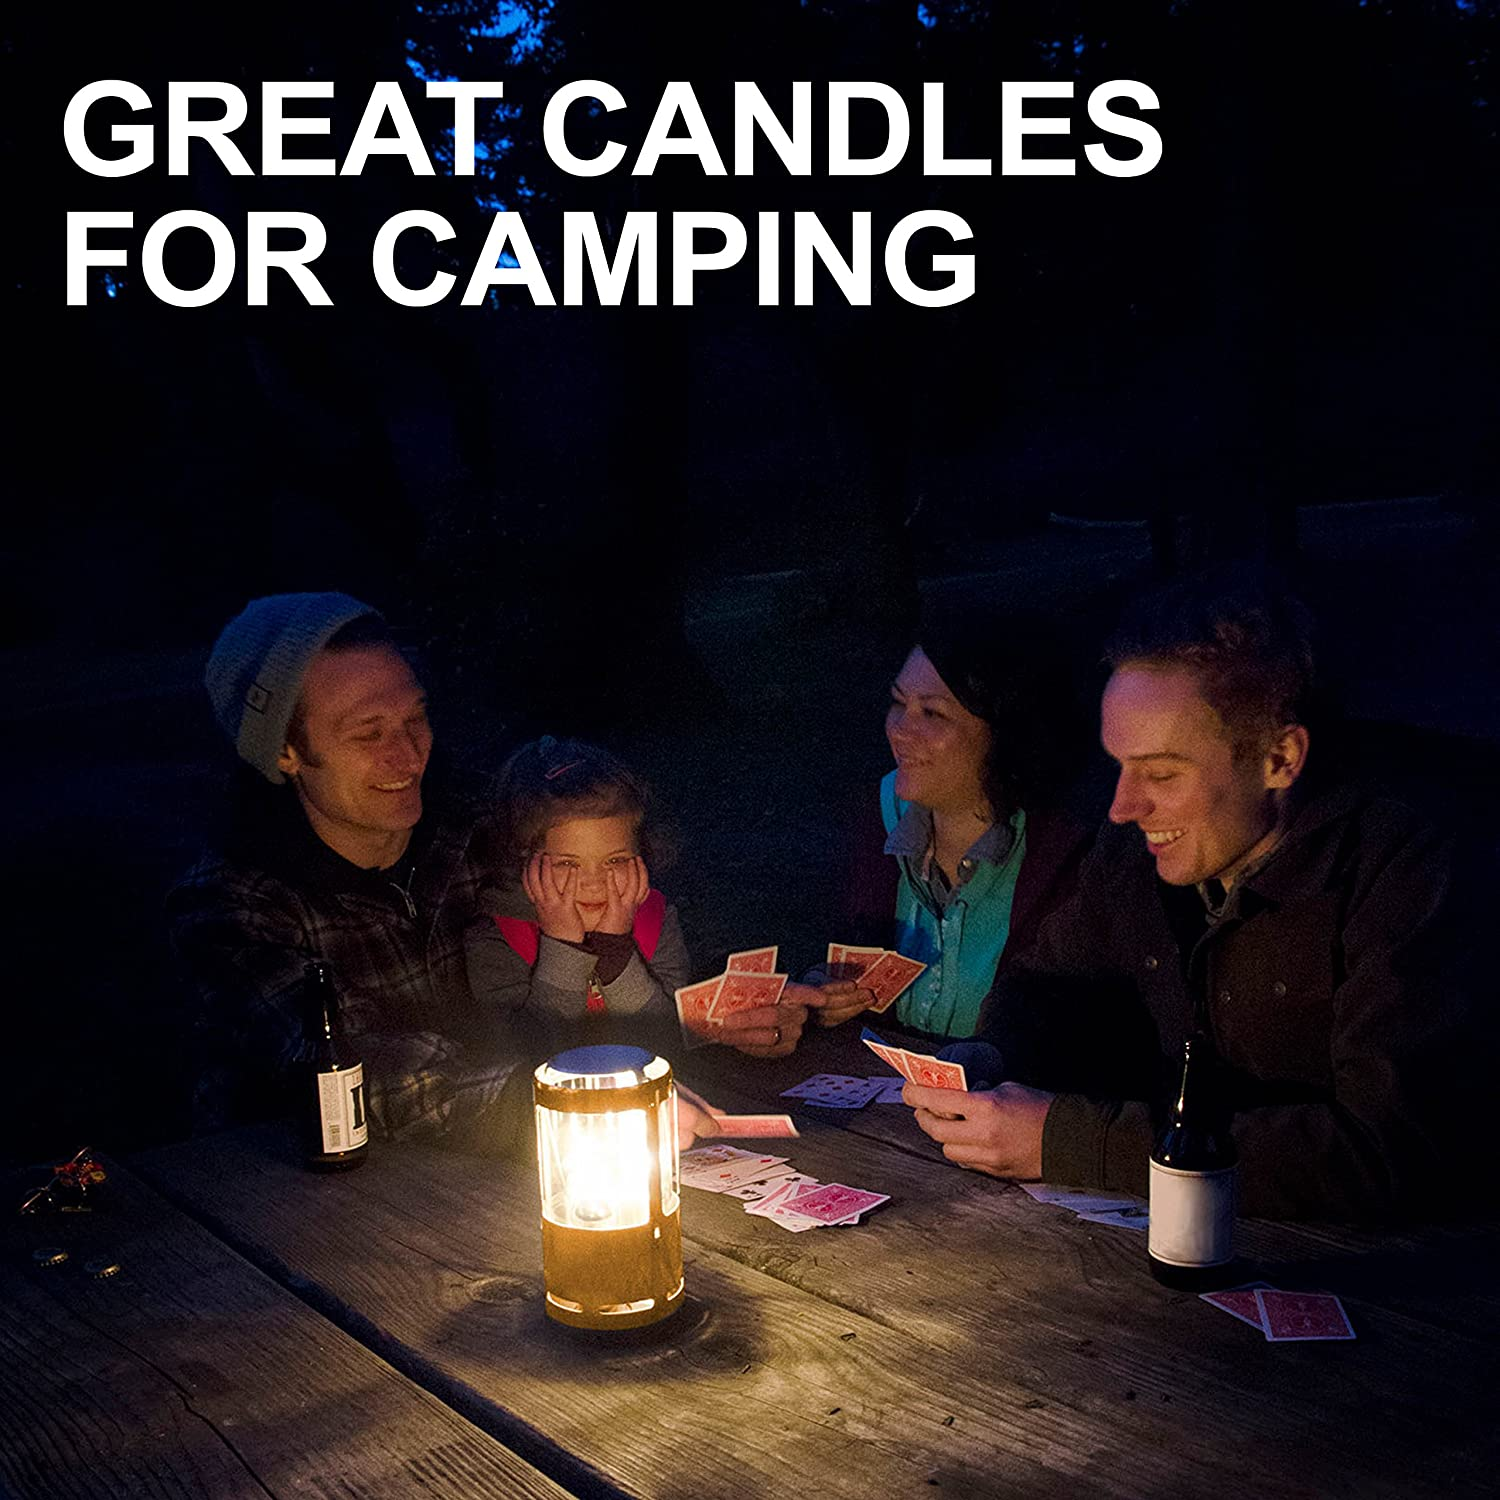 UCO Candle Lantern 3.5-Inch Candles, 3-Pack, 12-Hour Beeswax: Sports & Outdoors